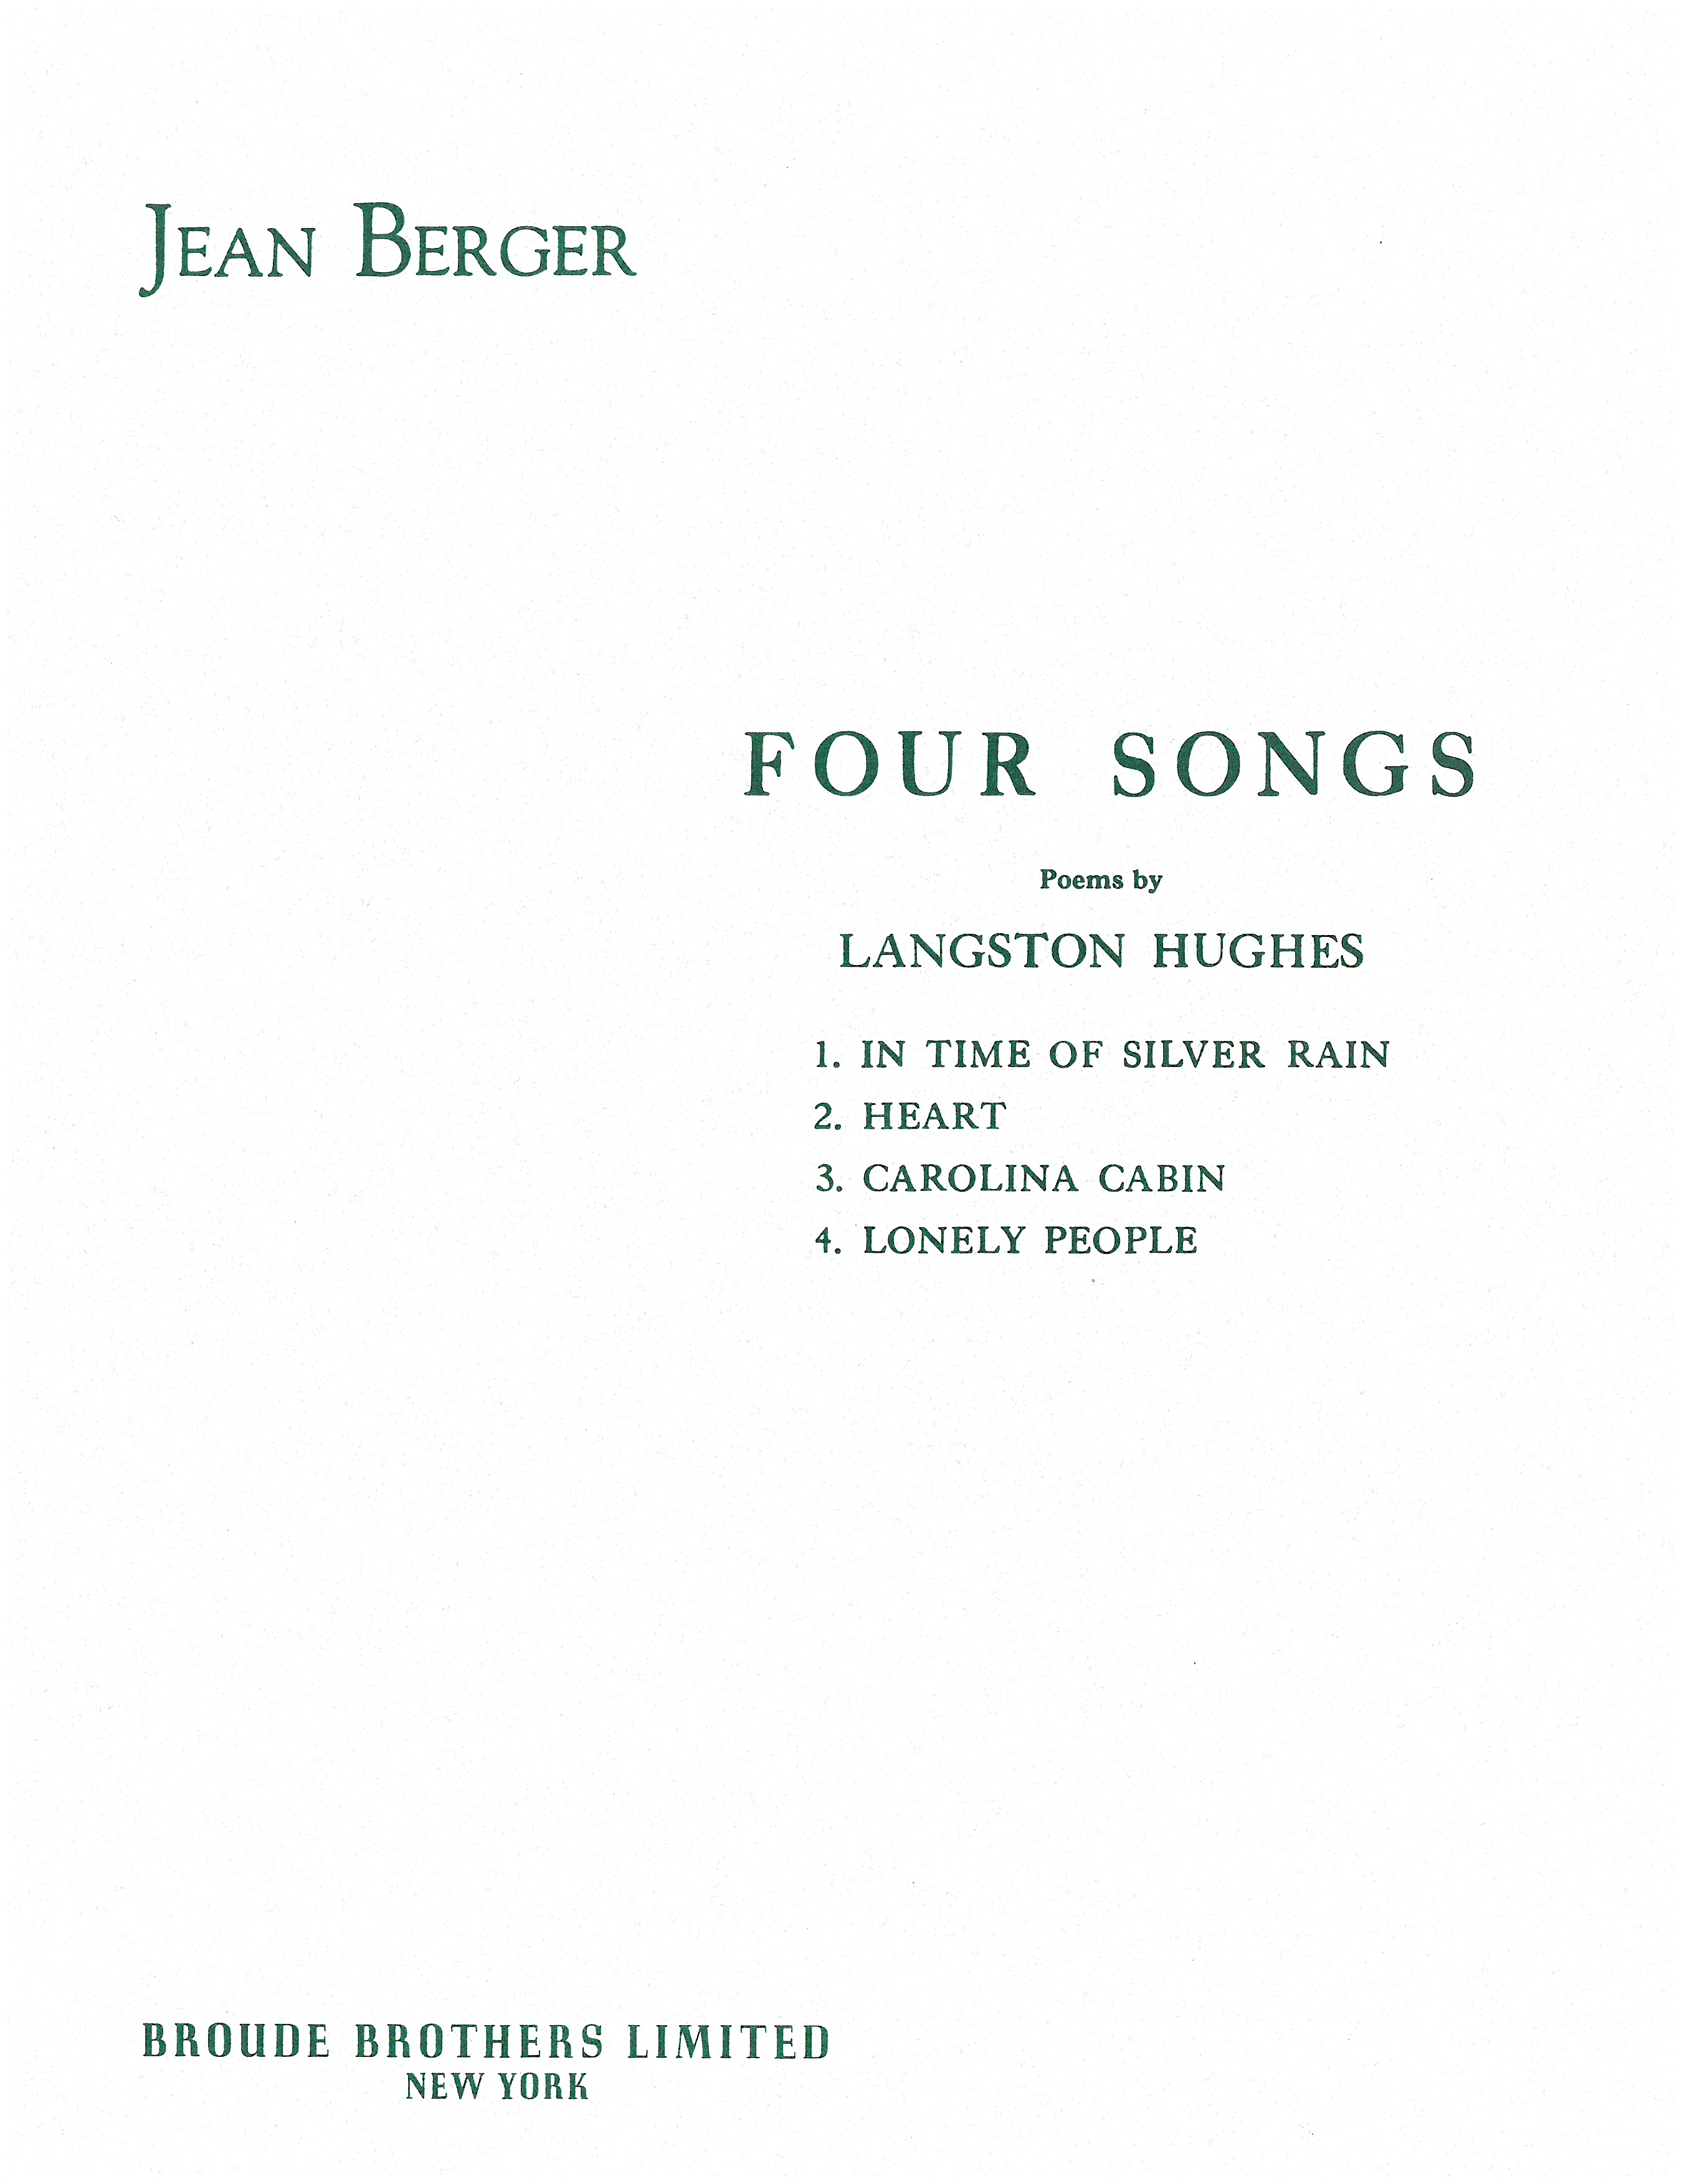 Four Songs Langston Hughes By Jean Berger